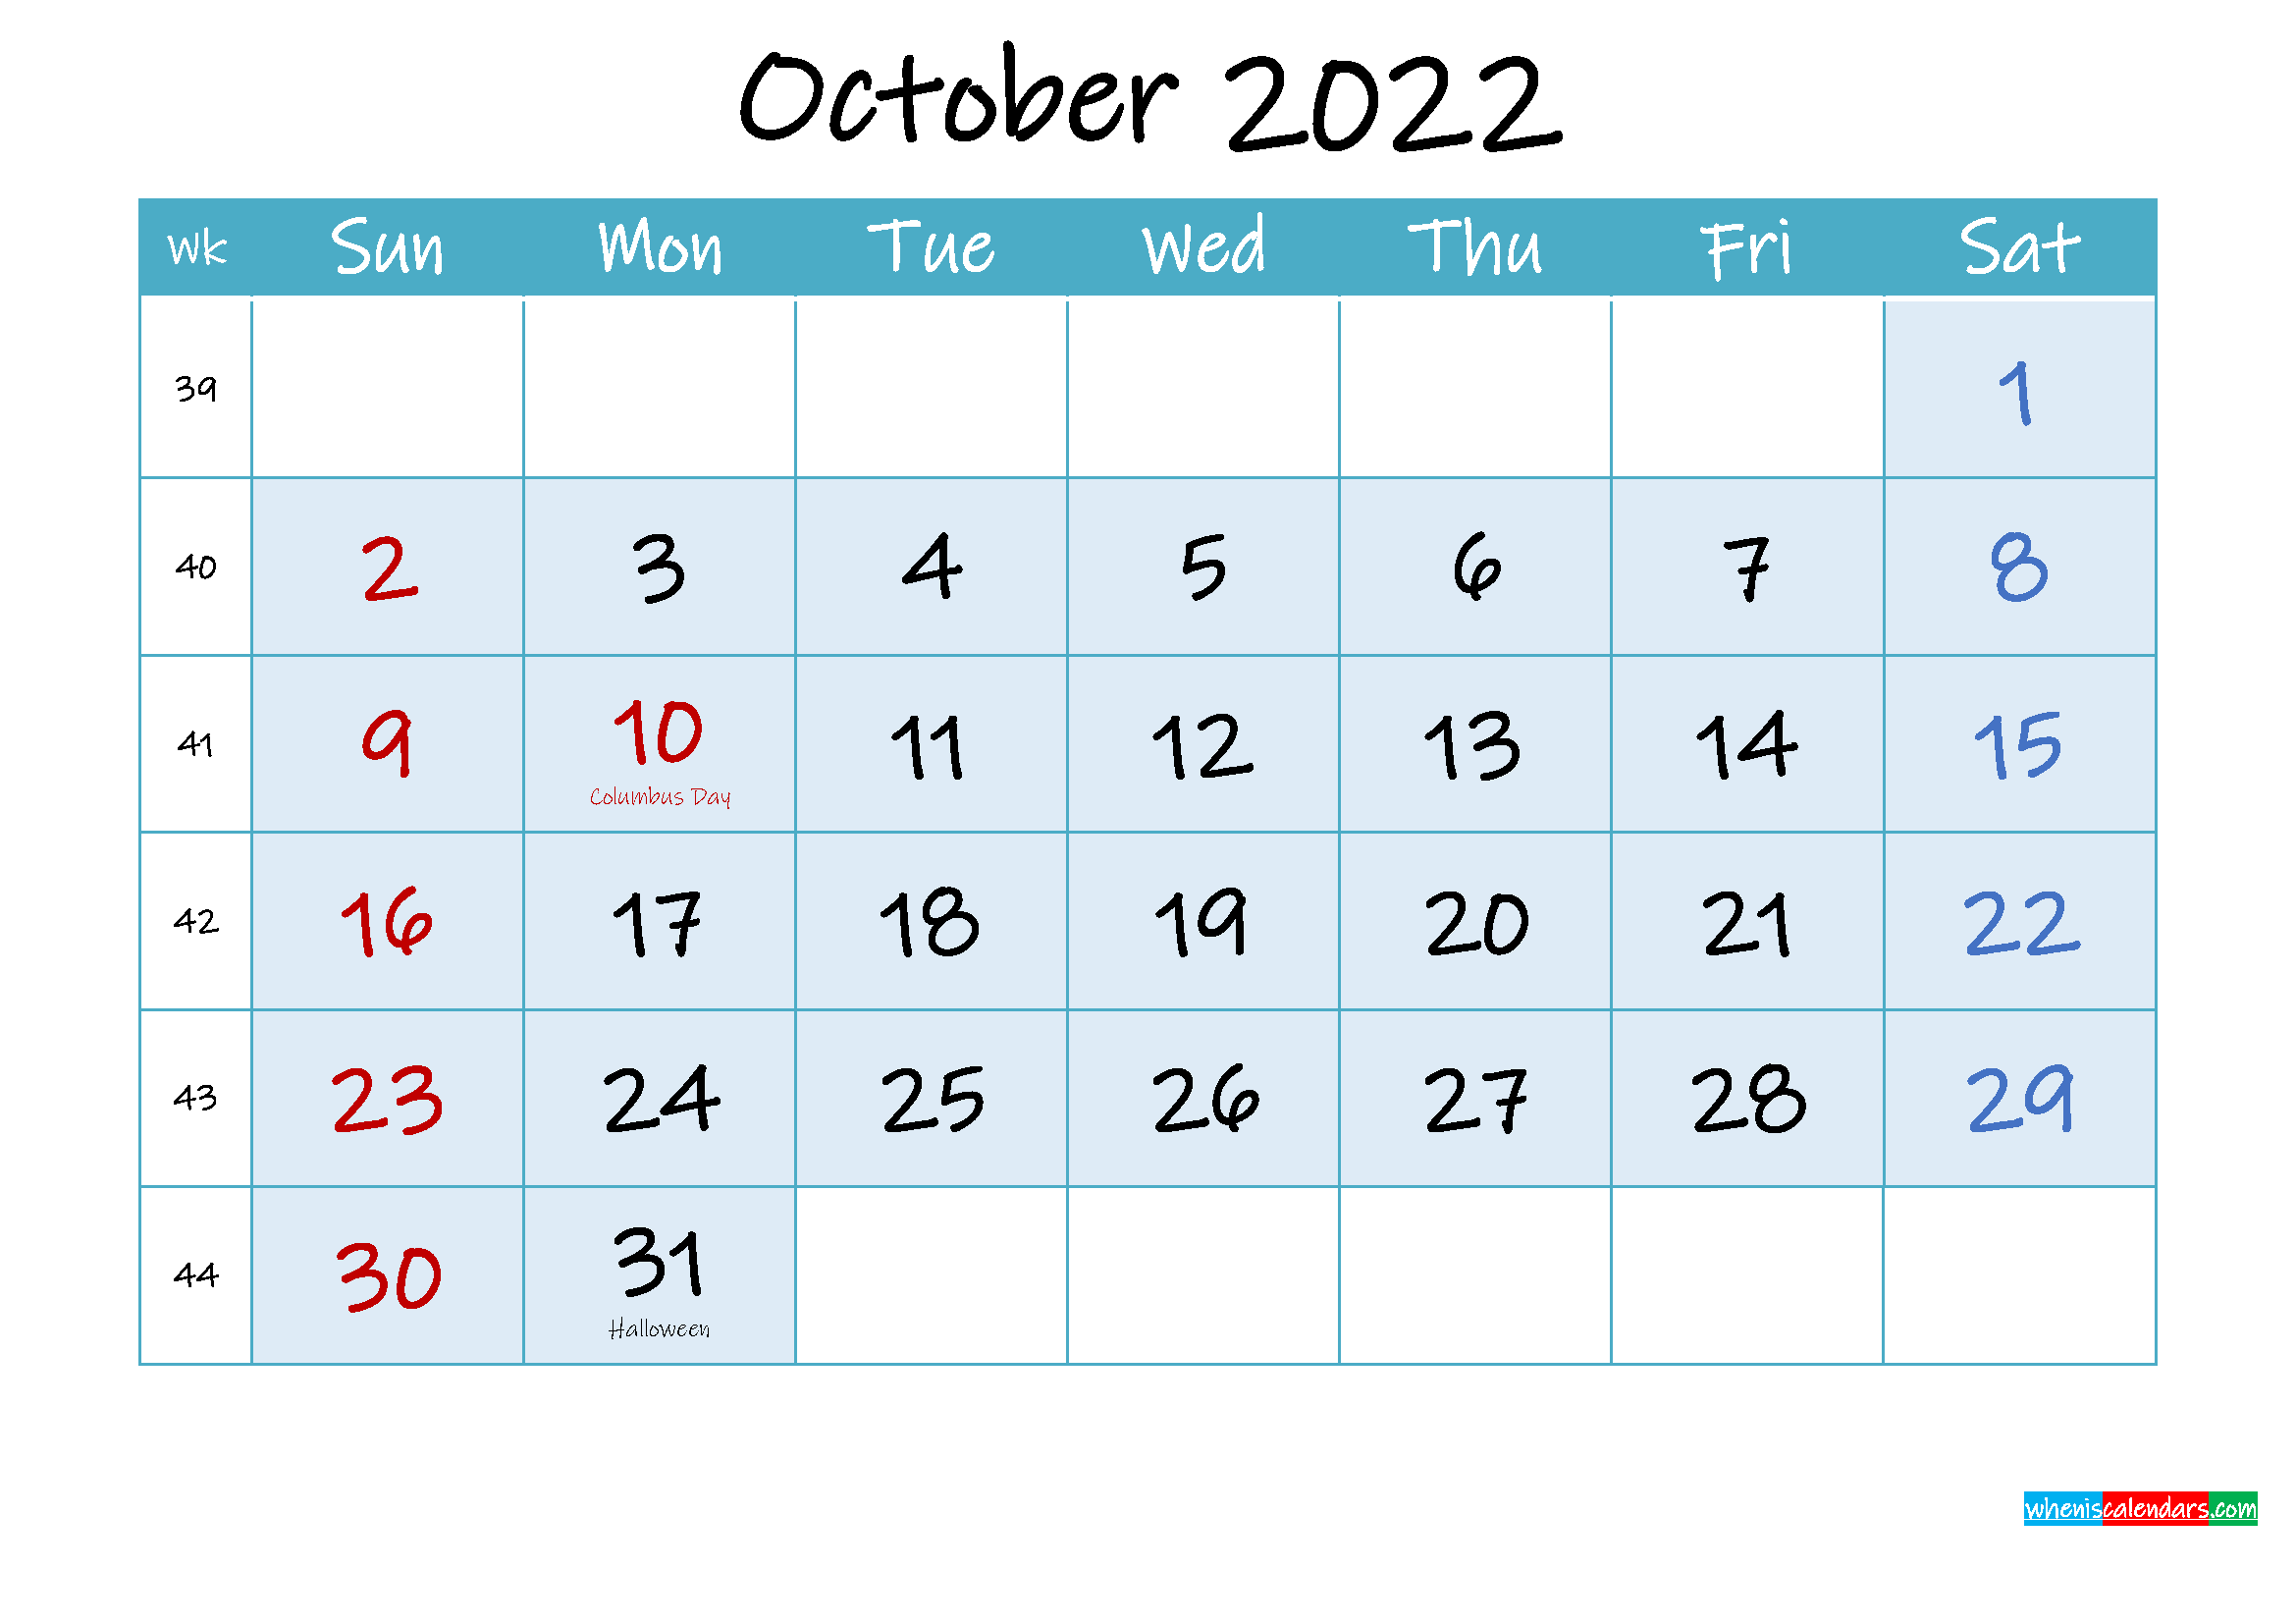 October 2022 Free Printable Calendar with Holidays